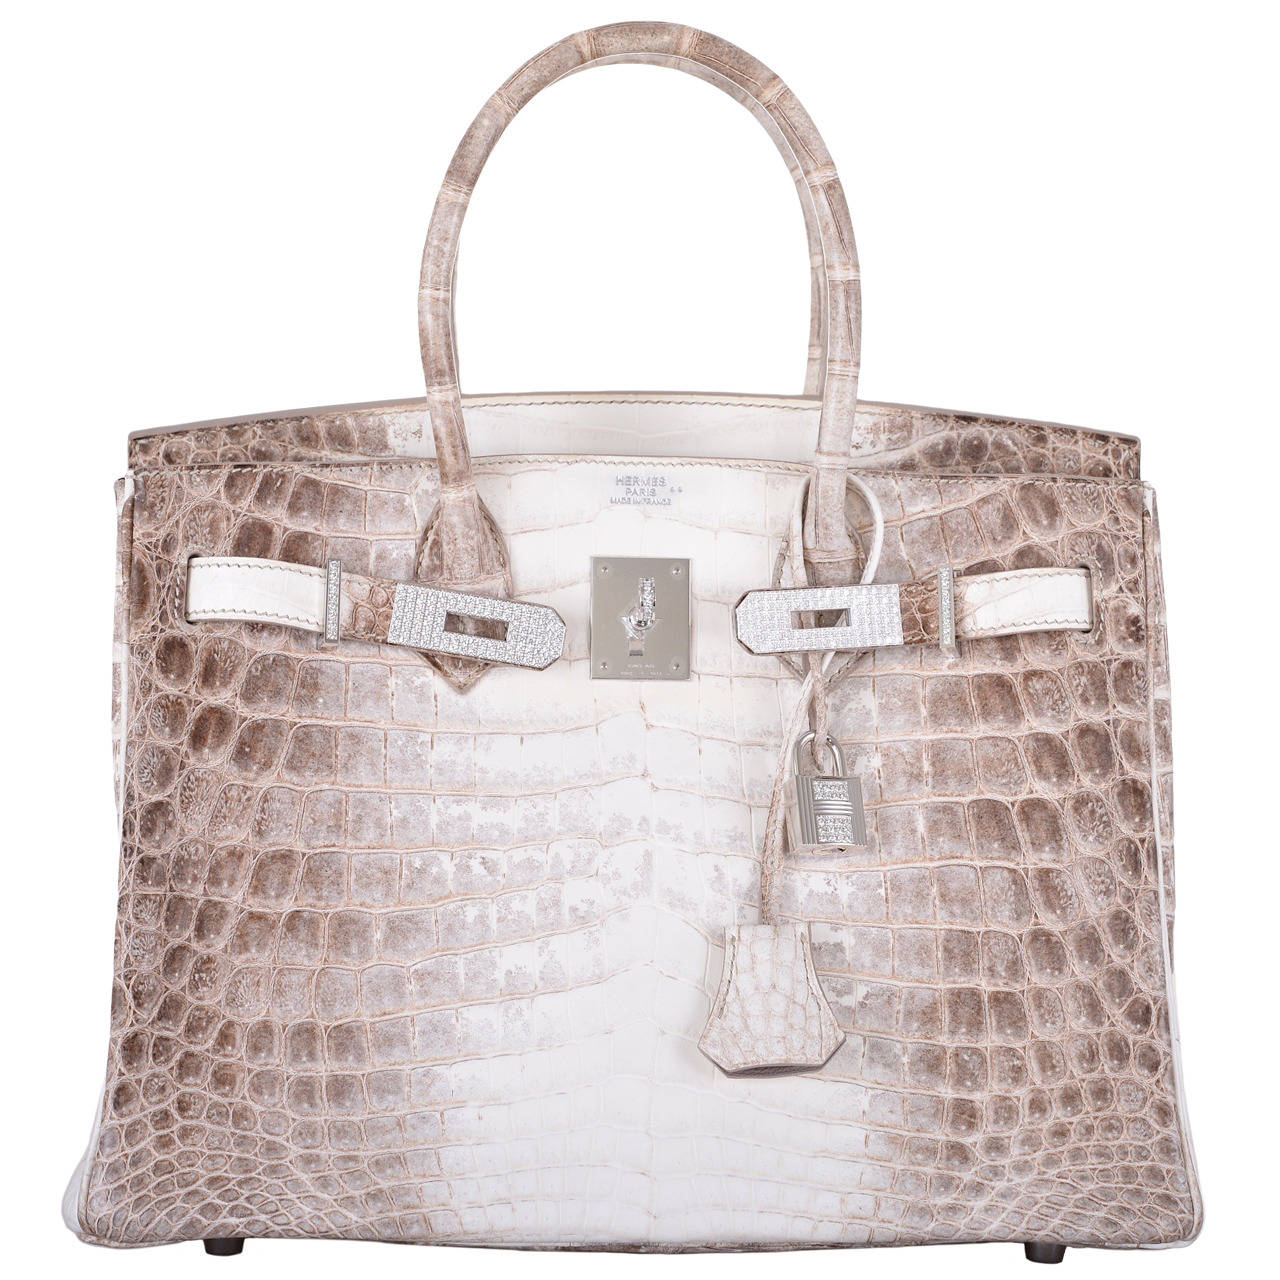 used hermes birkin bag for sale